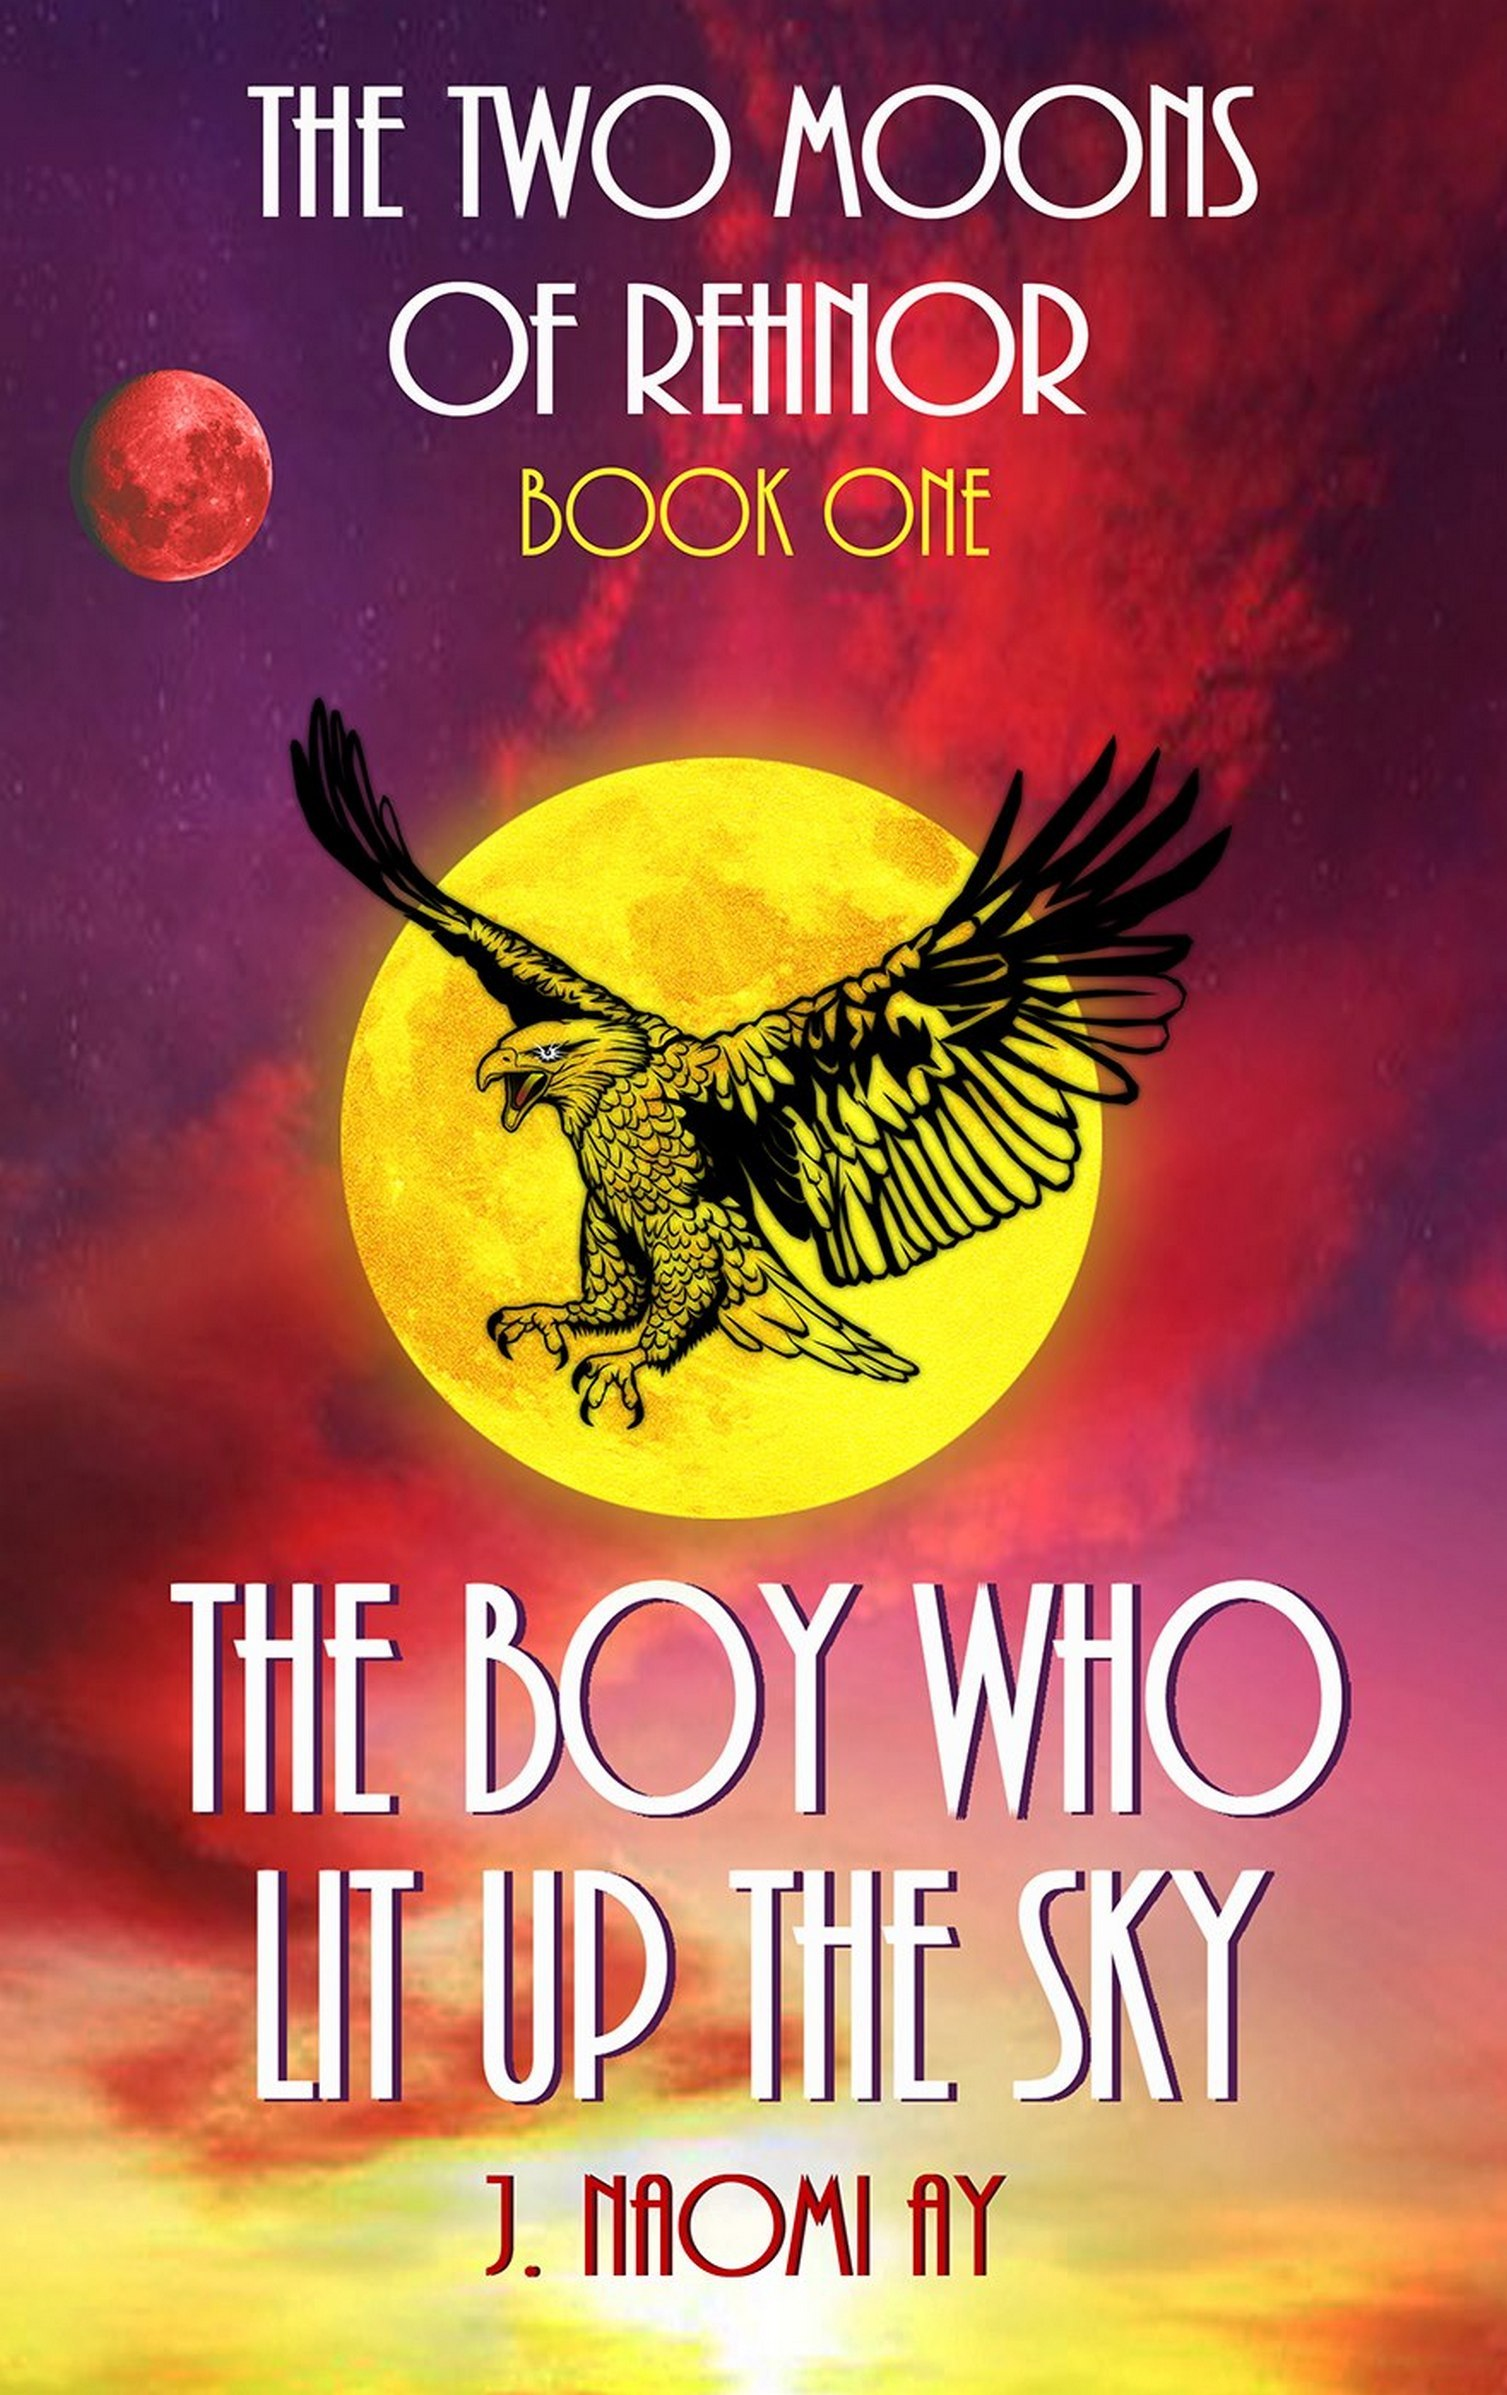 The Boy who Lit up the Sky (The Two Moons of Rehnor, Book 1)